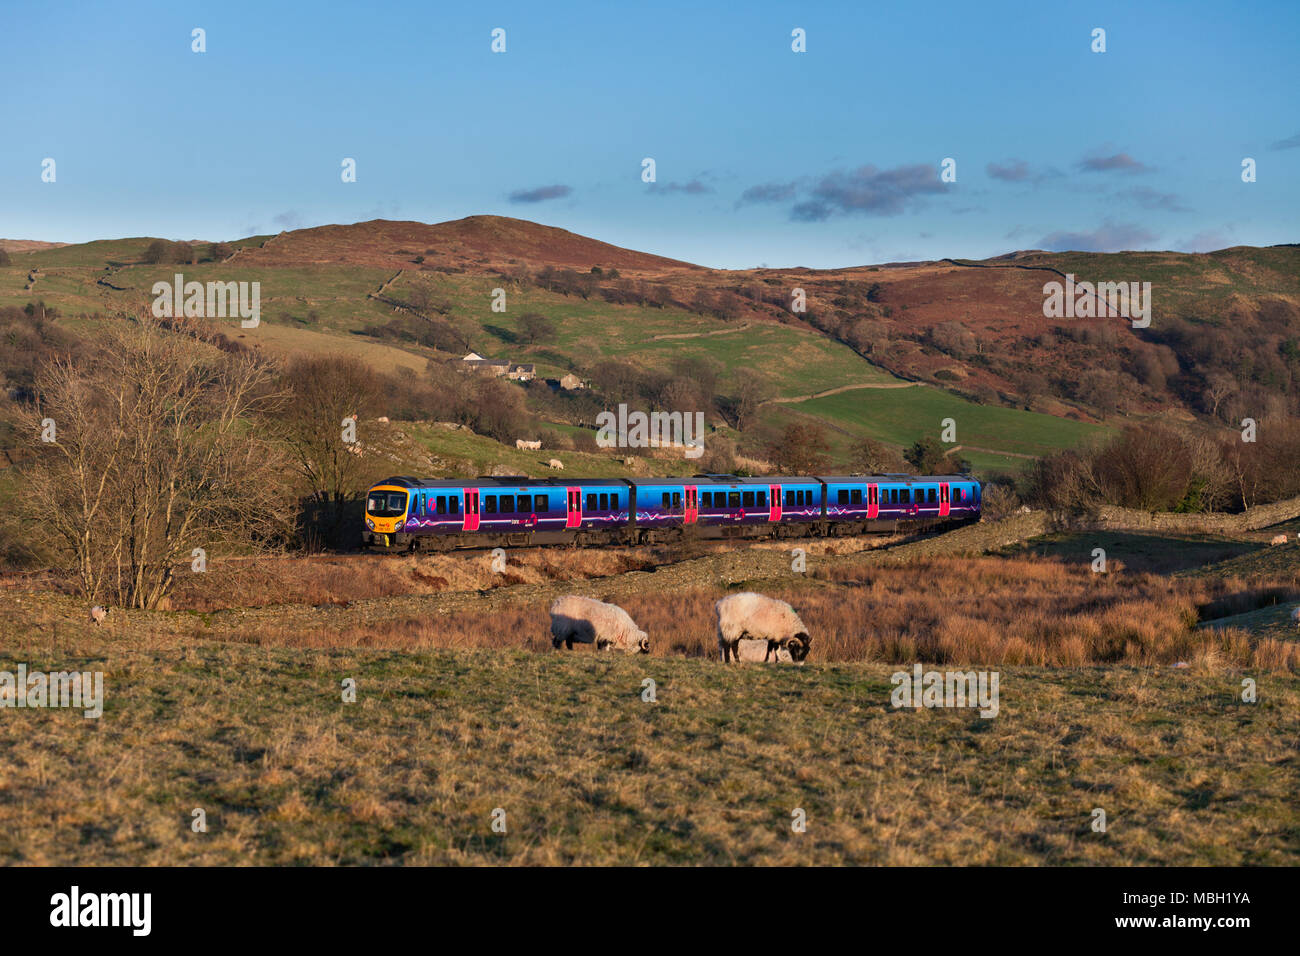 A First Transpennine Express class 185 diesel train at Ings on the Oxenhome to Windermere railway line - Stock Image